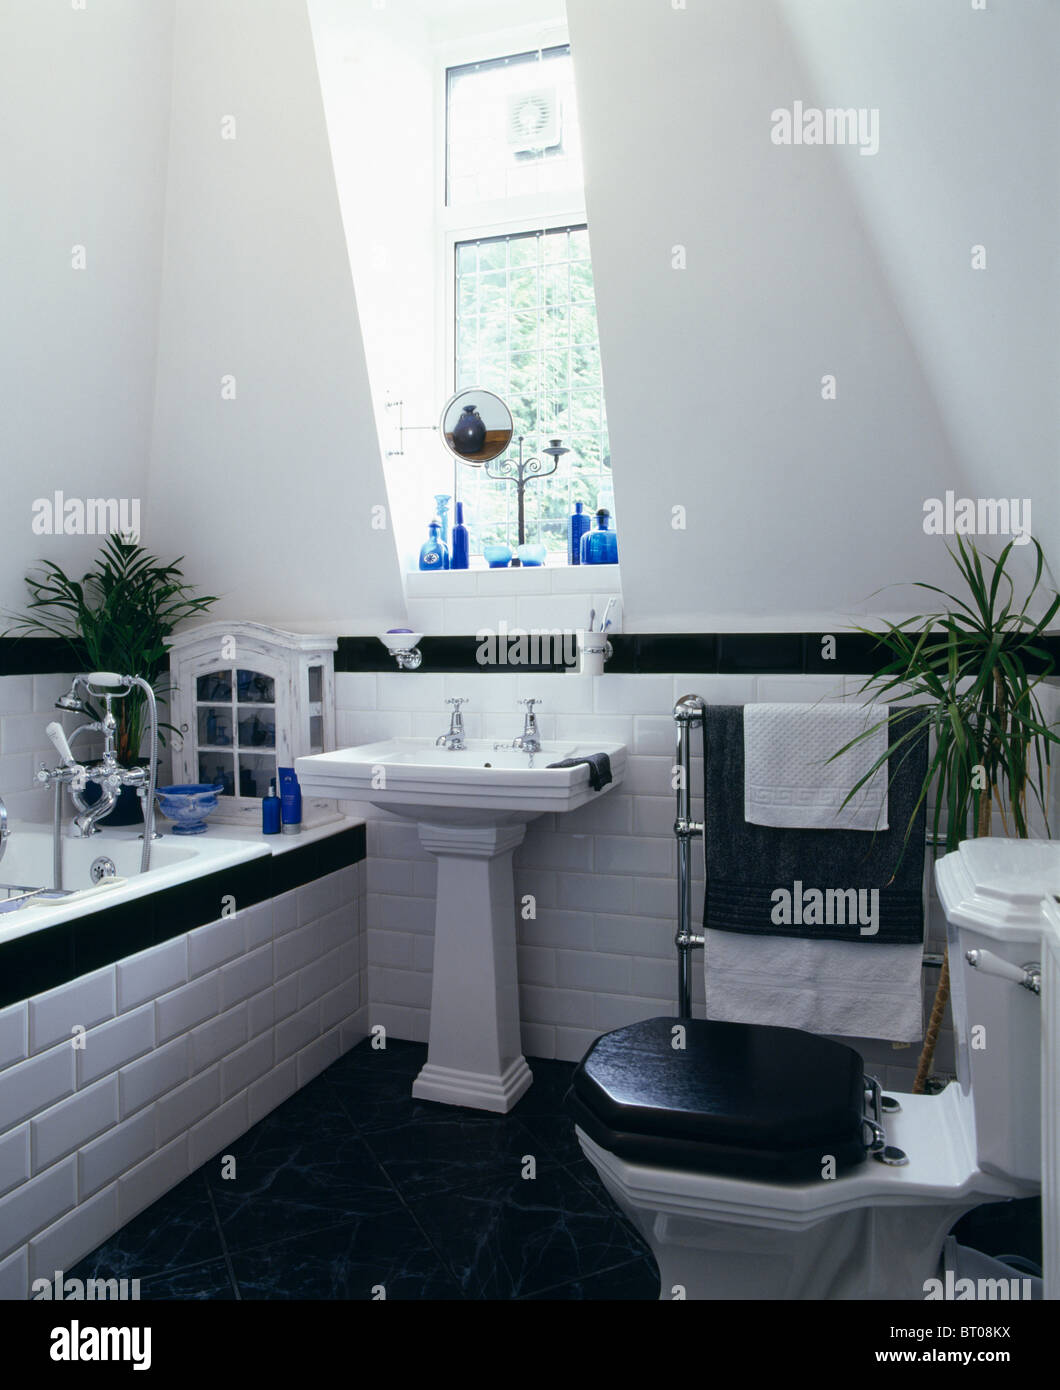 Bathroom Black White Tiles Stock Photos & Bathroom Black White Tiles ...